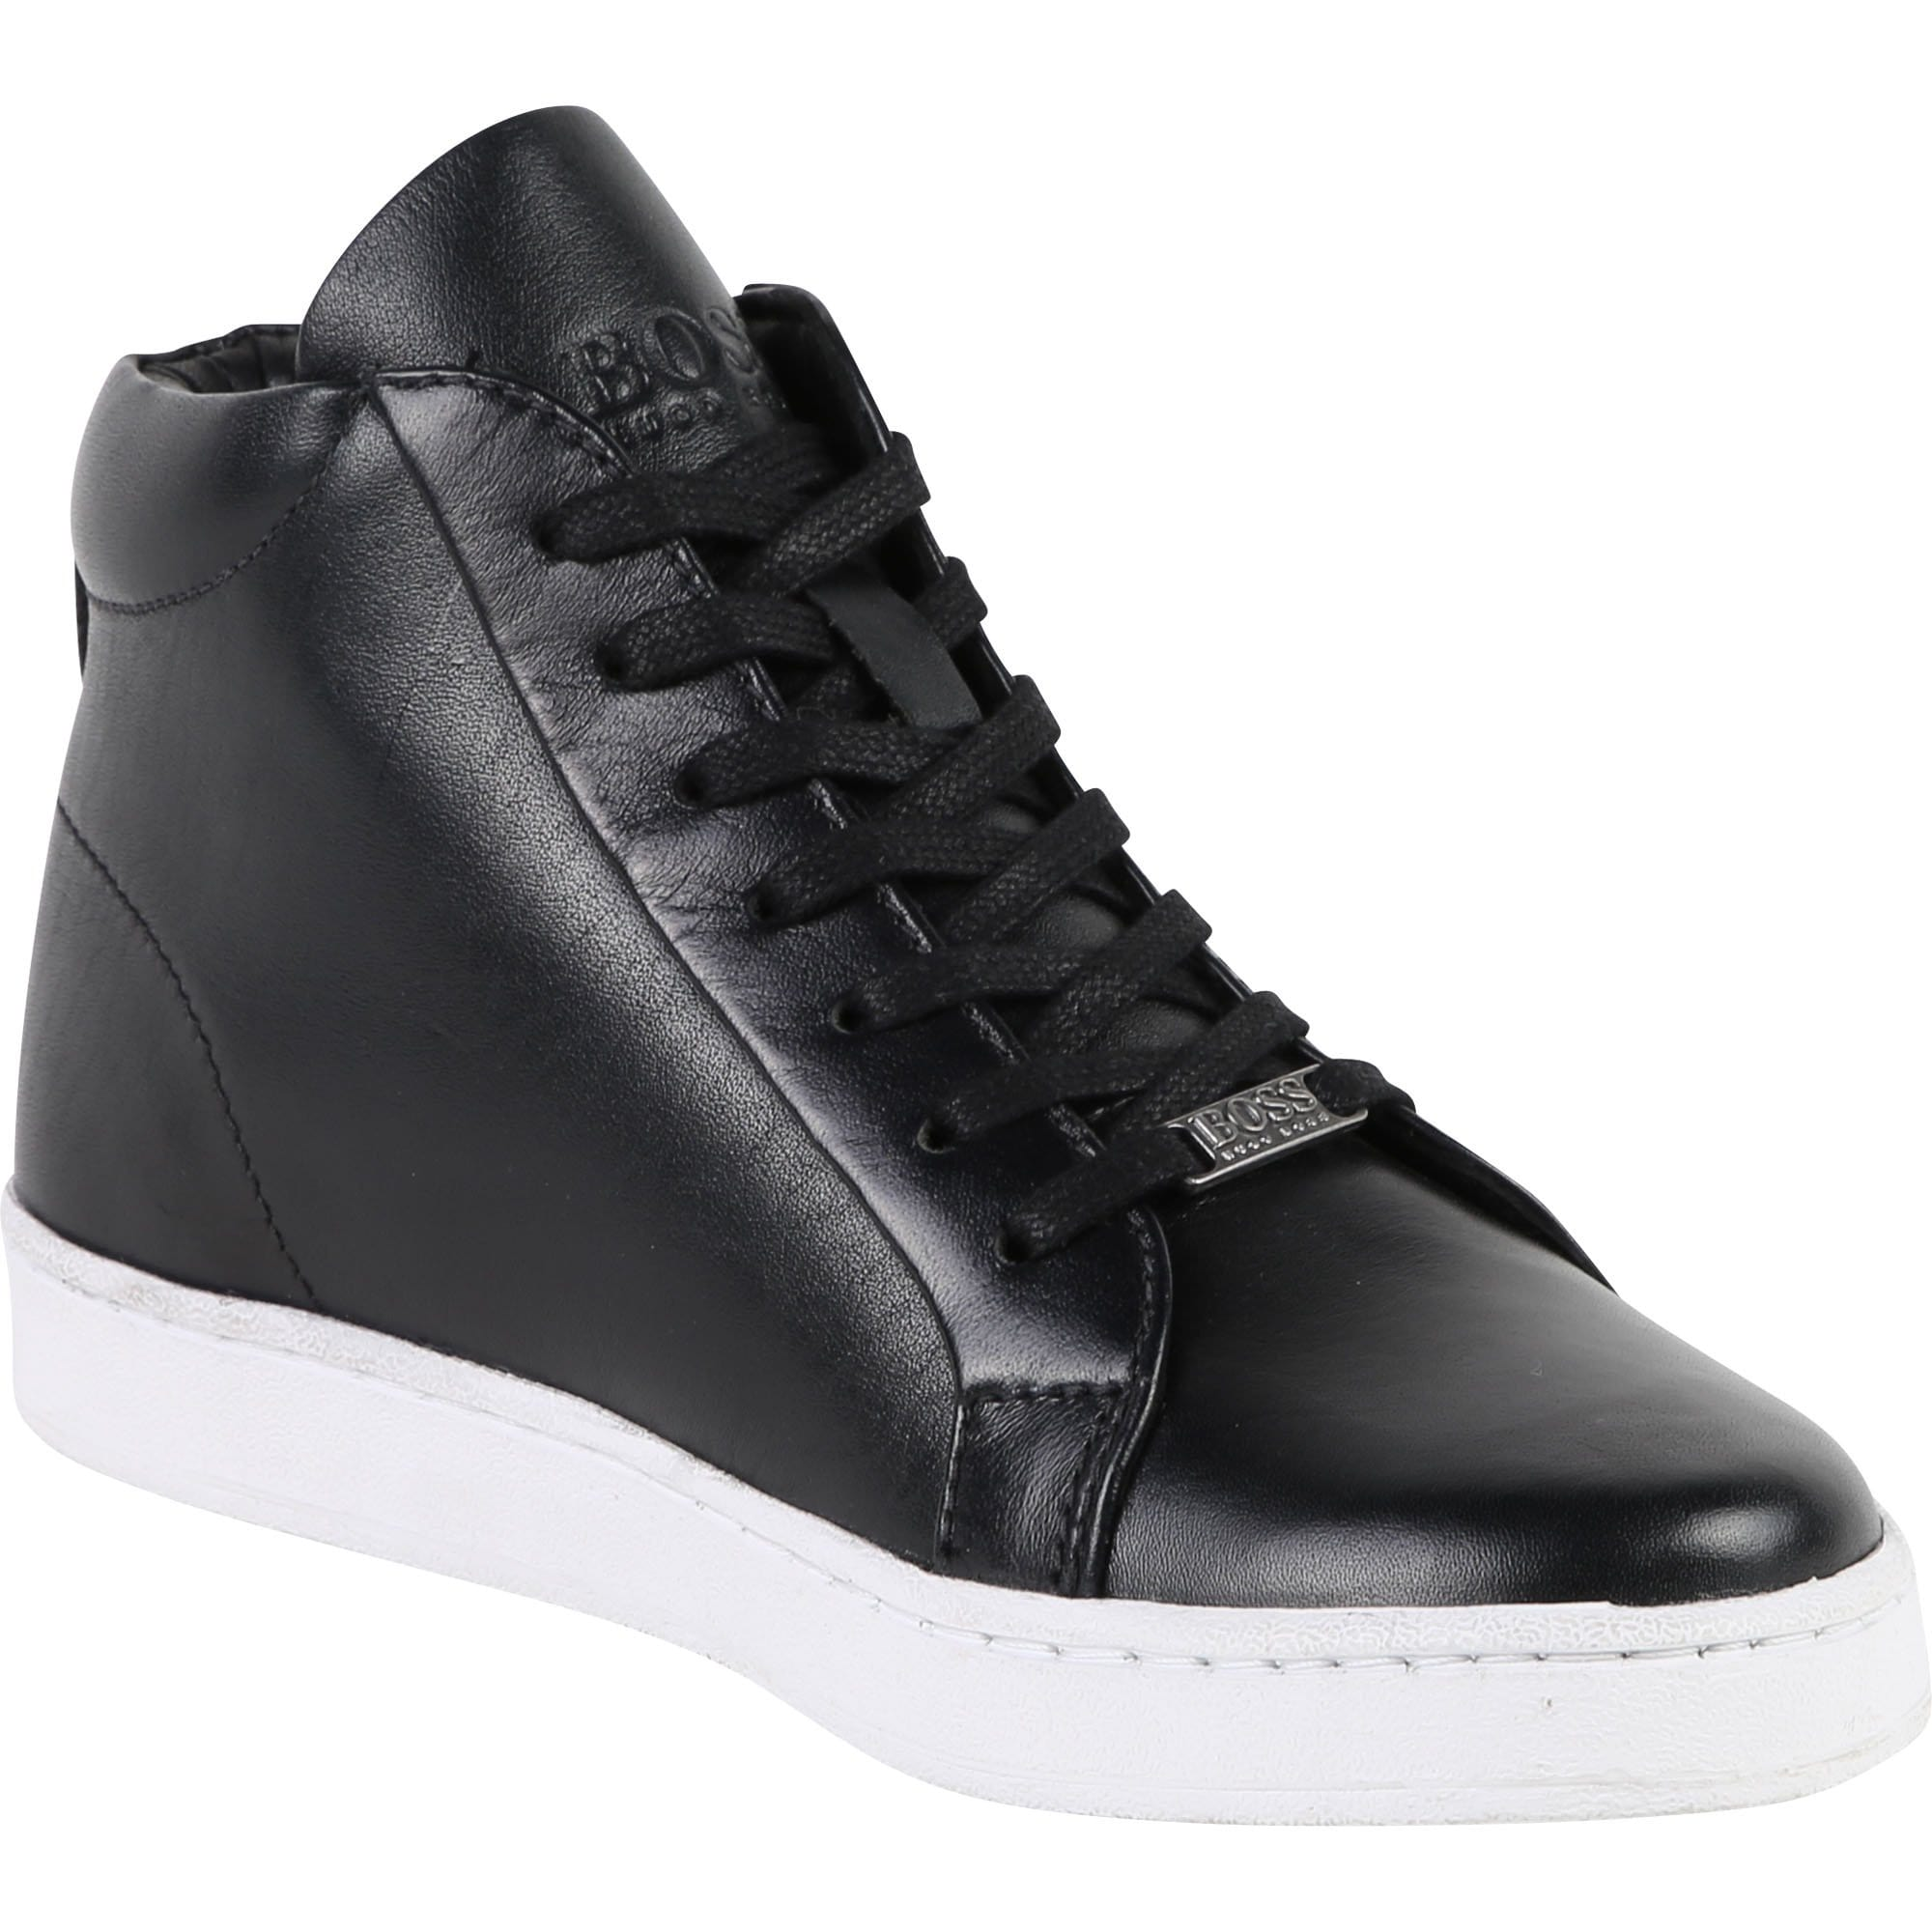 Hugo Boss Boys Ankle High Trainers (4715886542979)